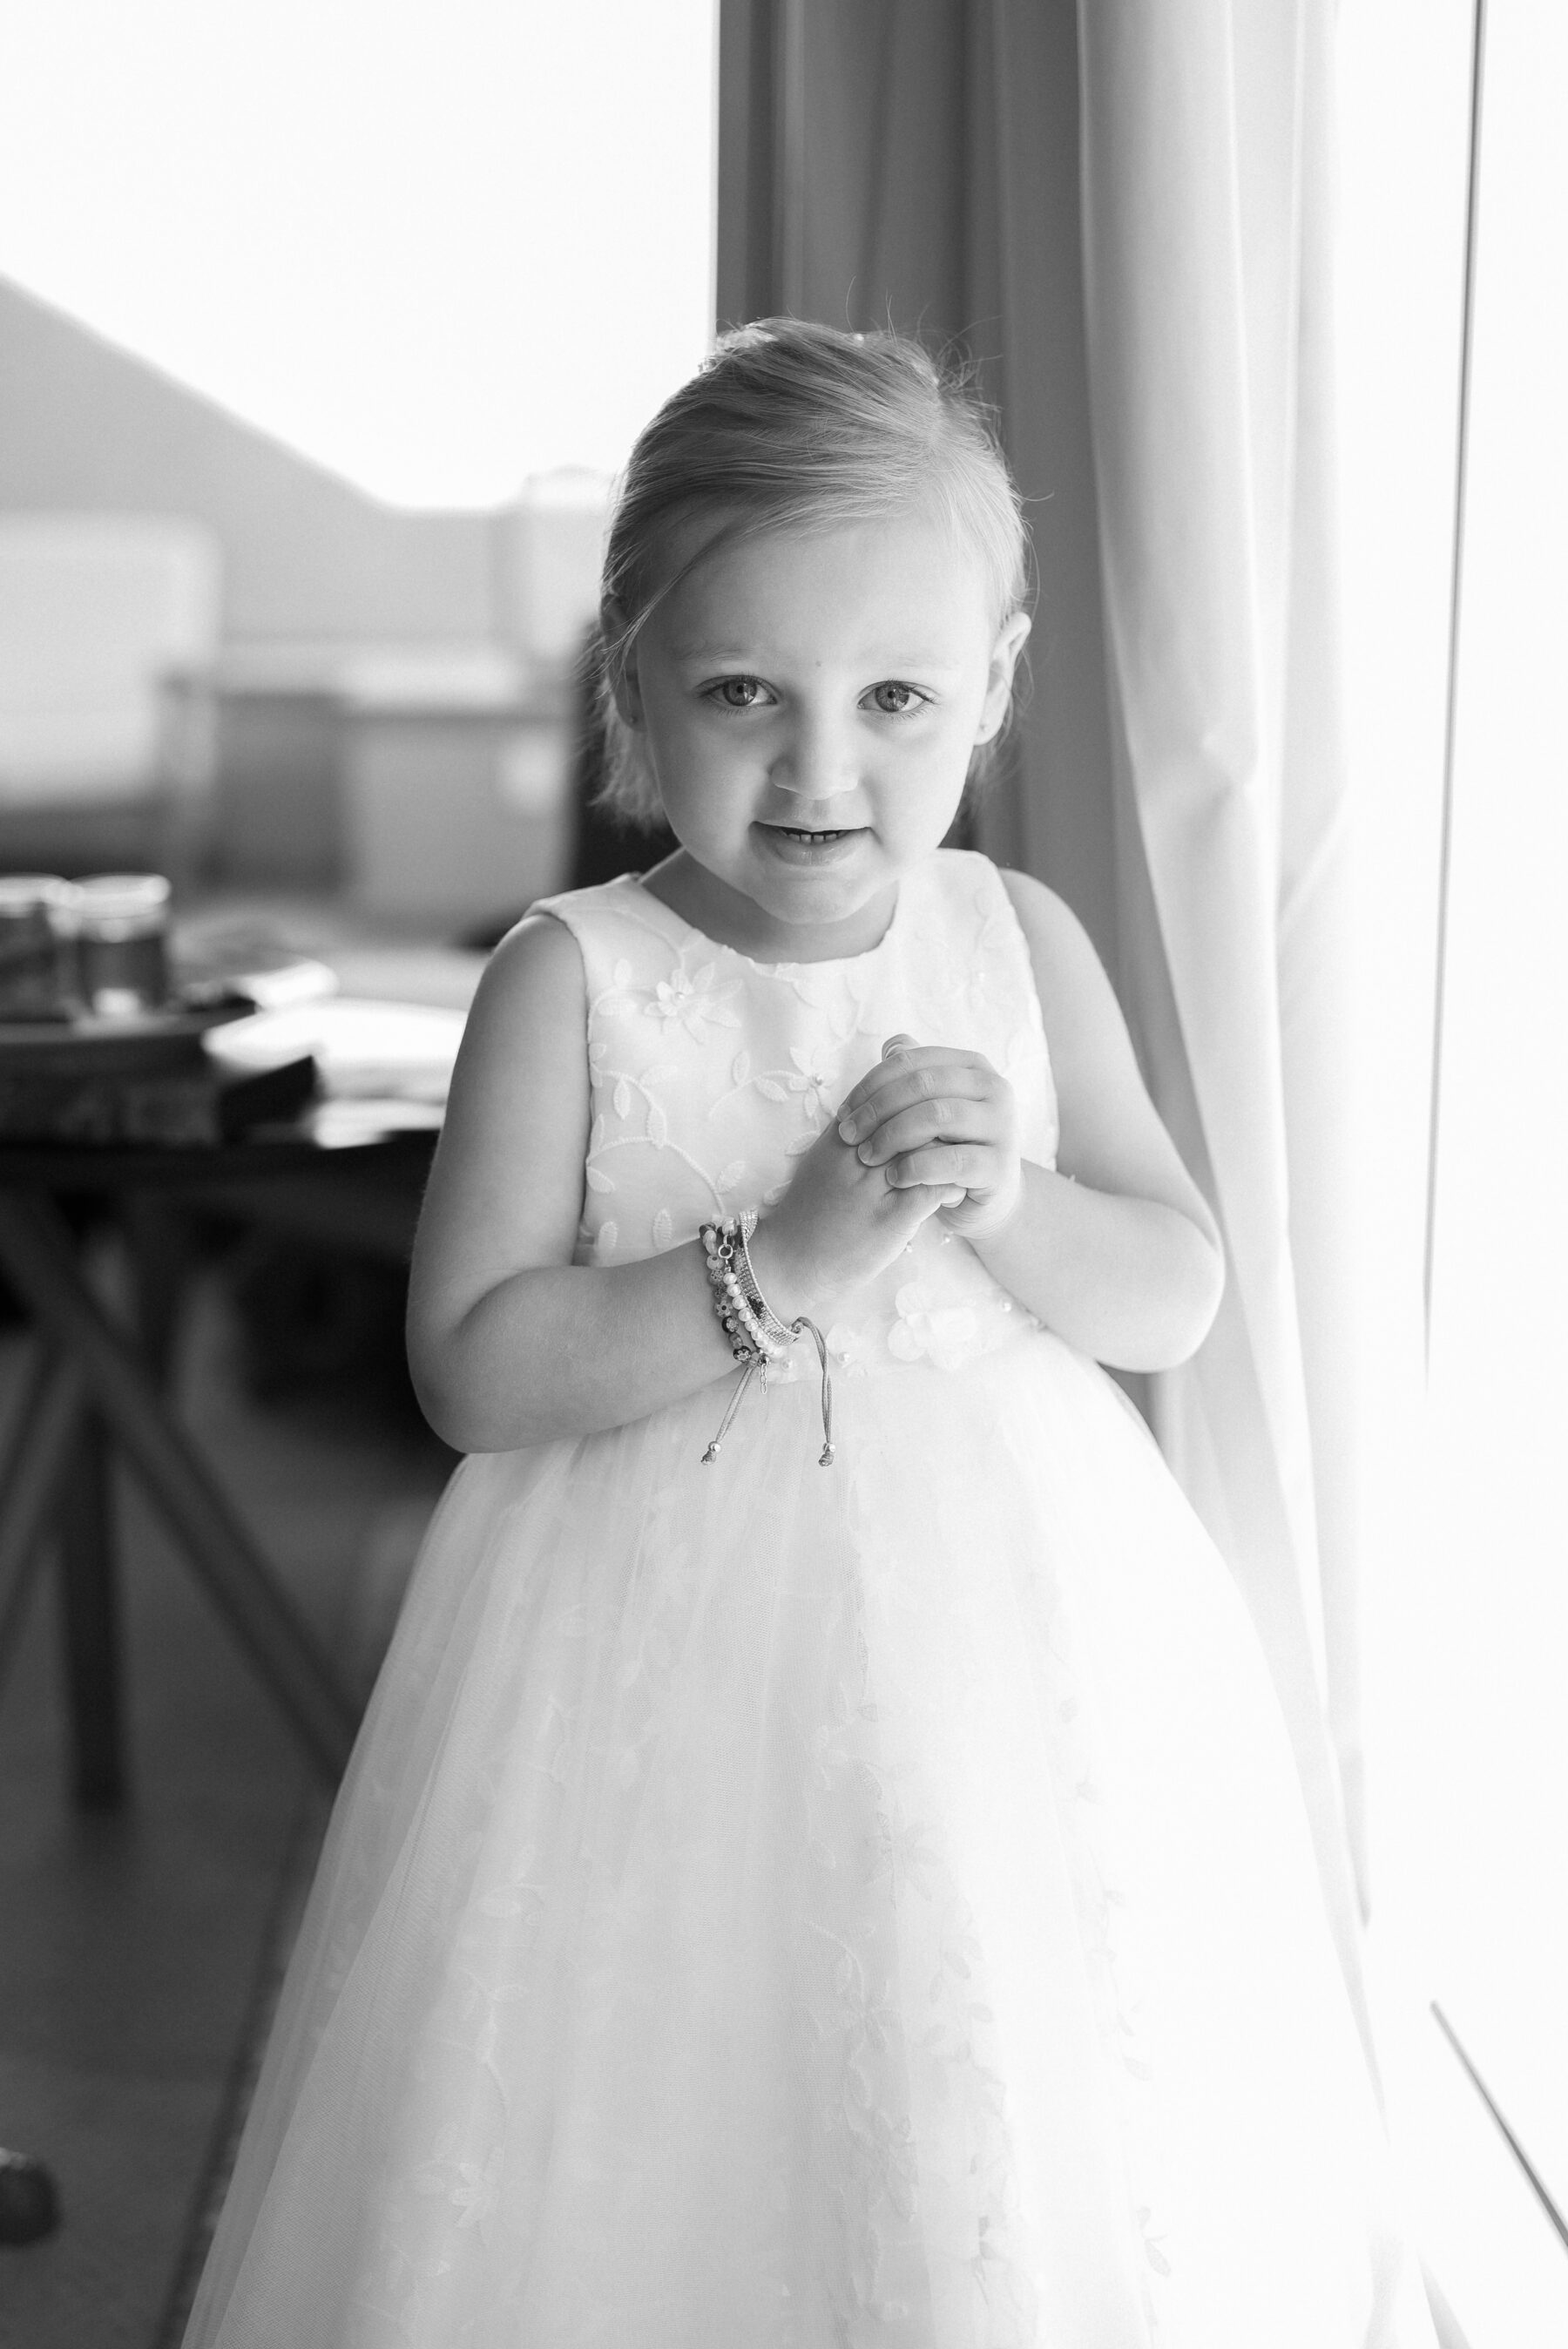 Flower girl portrait: Intimate Caribbean Wedding by Details Nashville featured on Nashville Bride Guide